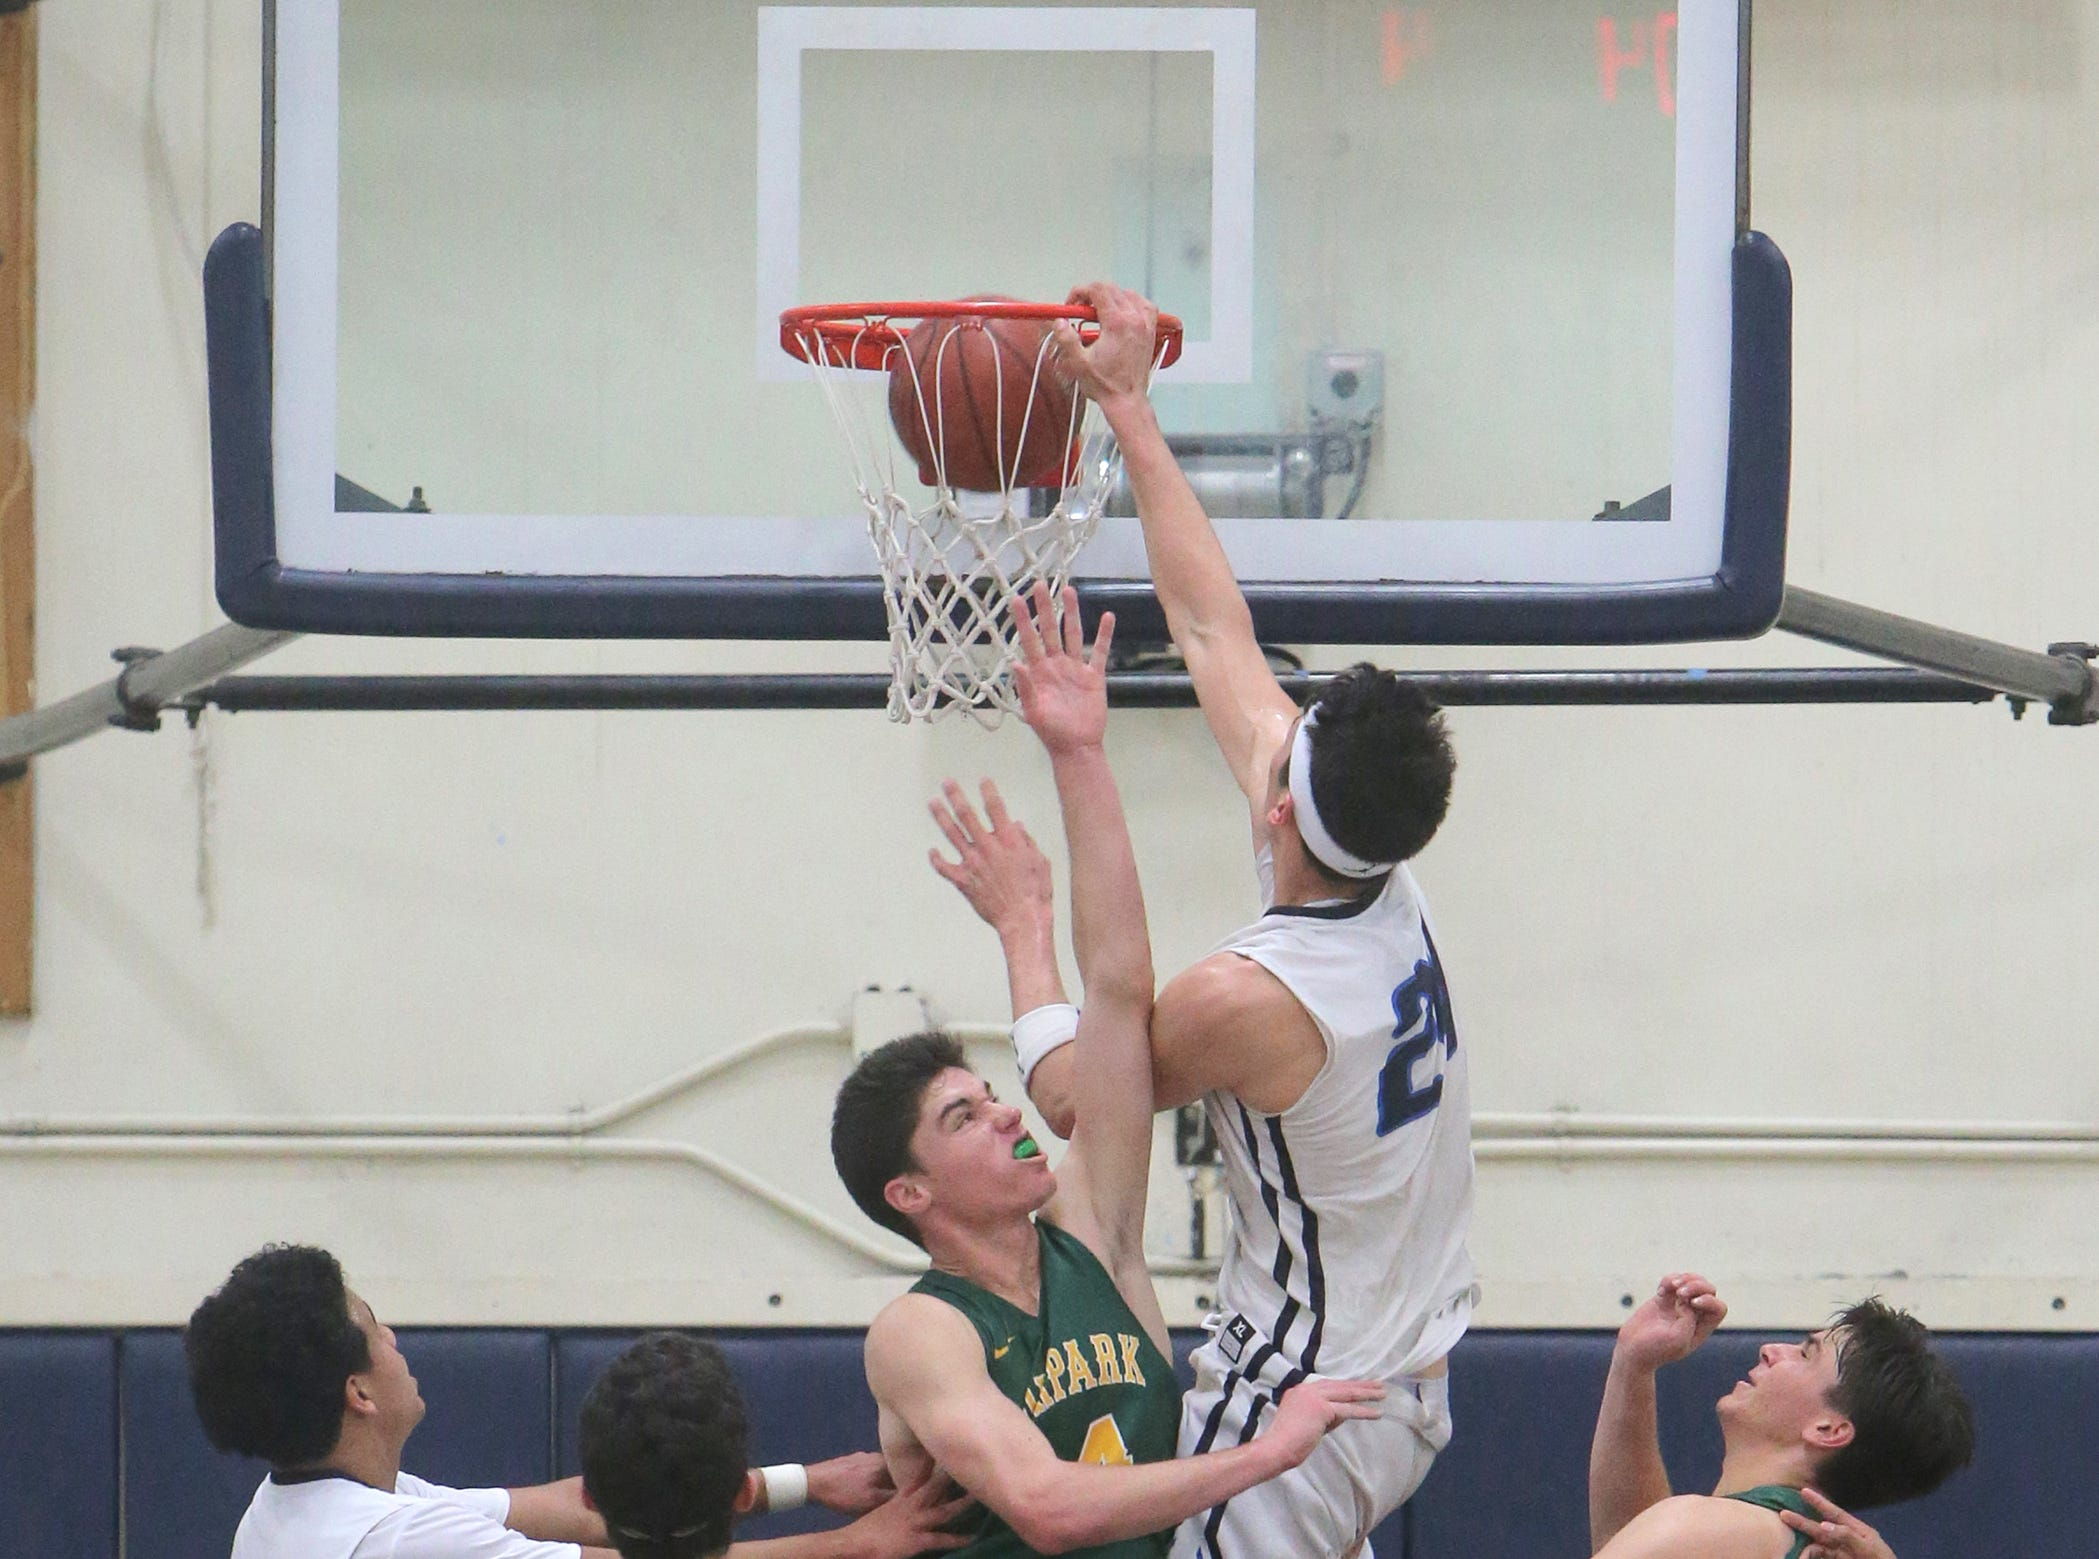 Camarillo star Jaime Jaquez Jr. throws one down over Moorpark's Troy Anderson during Friday night's Coastal Canyon League game at Camarillo High. Jaquez scored 34 points in the Scorpions' 82-68 victory.